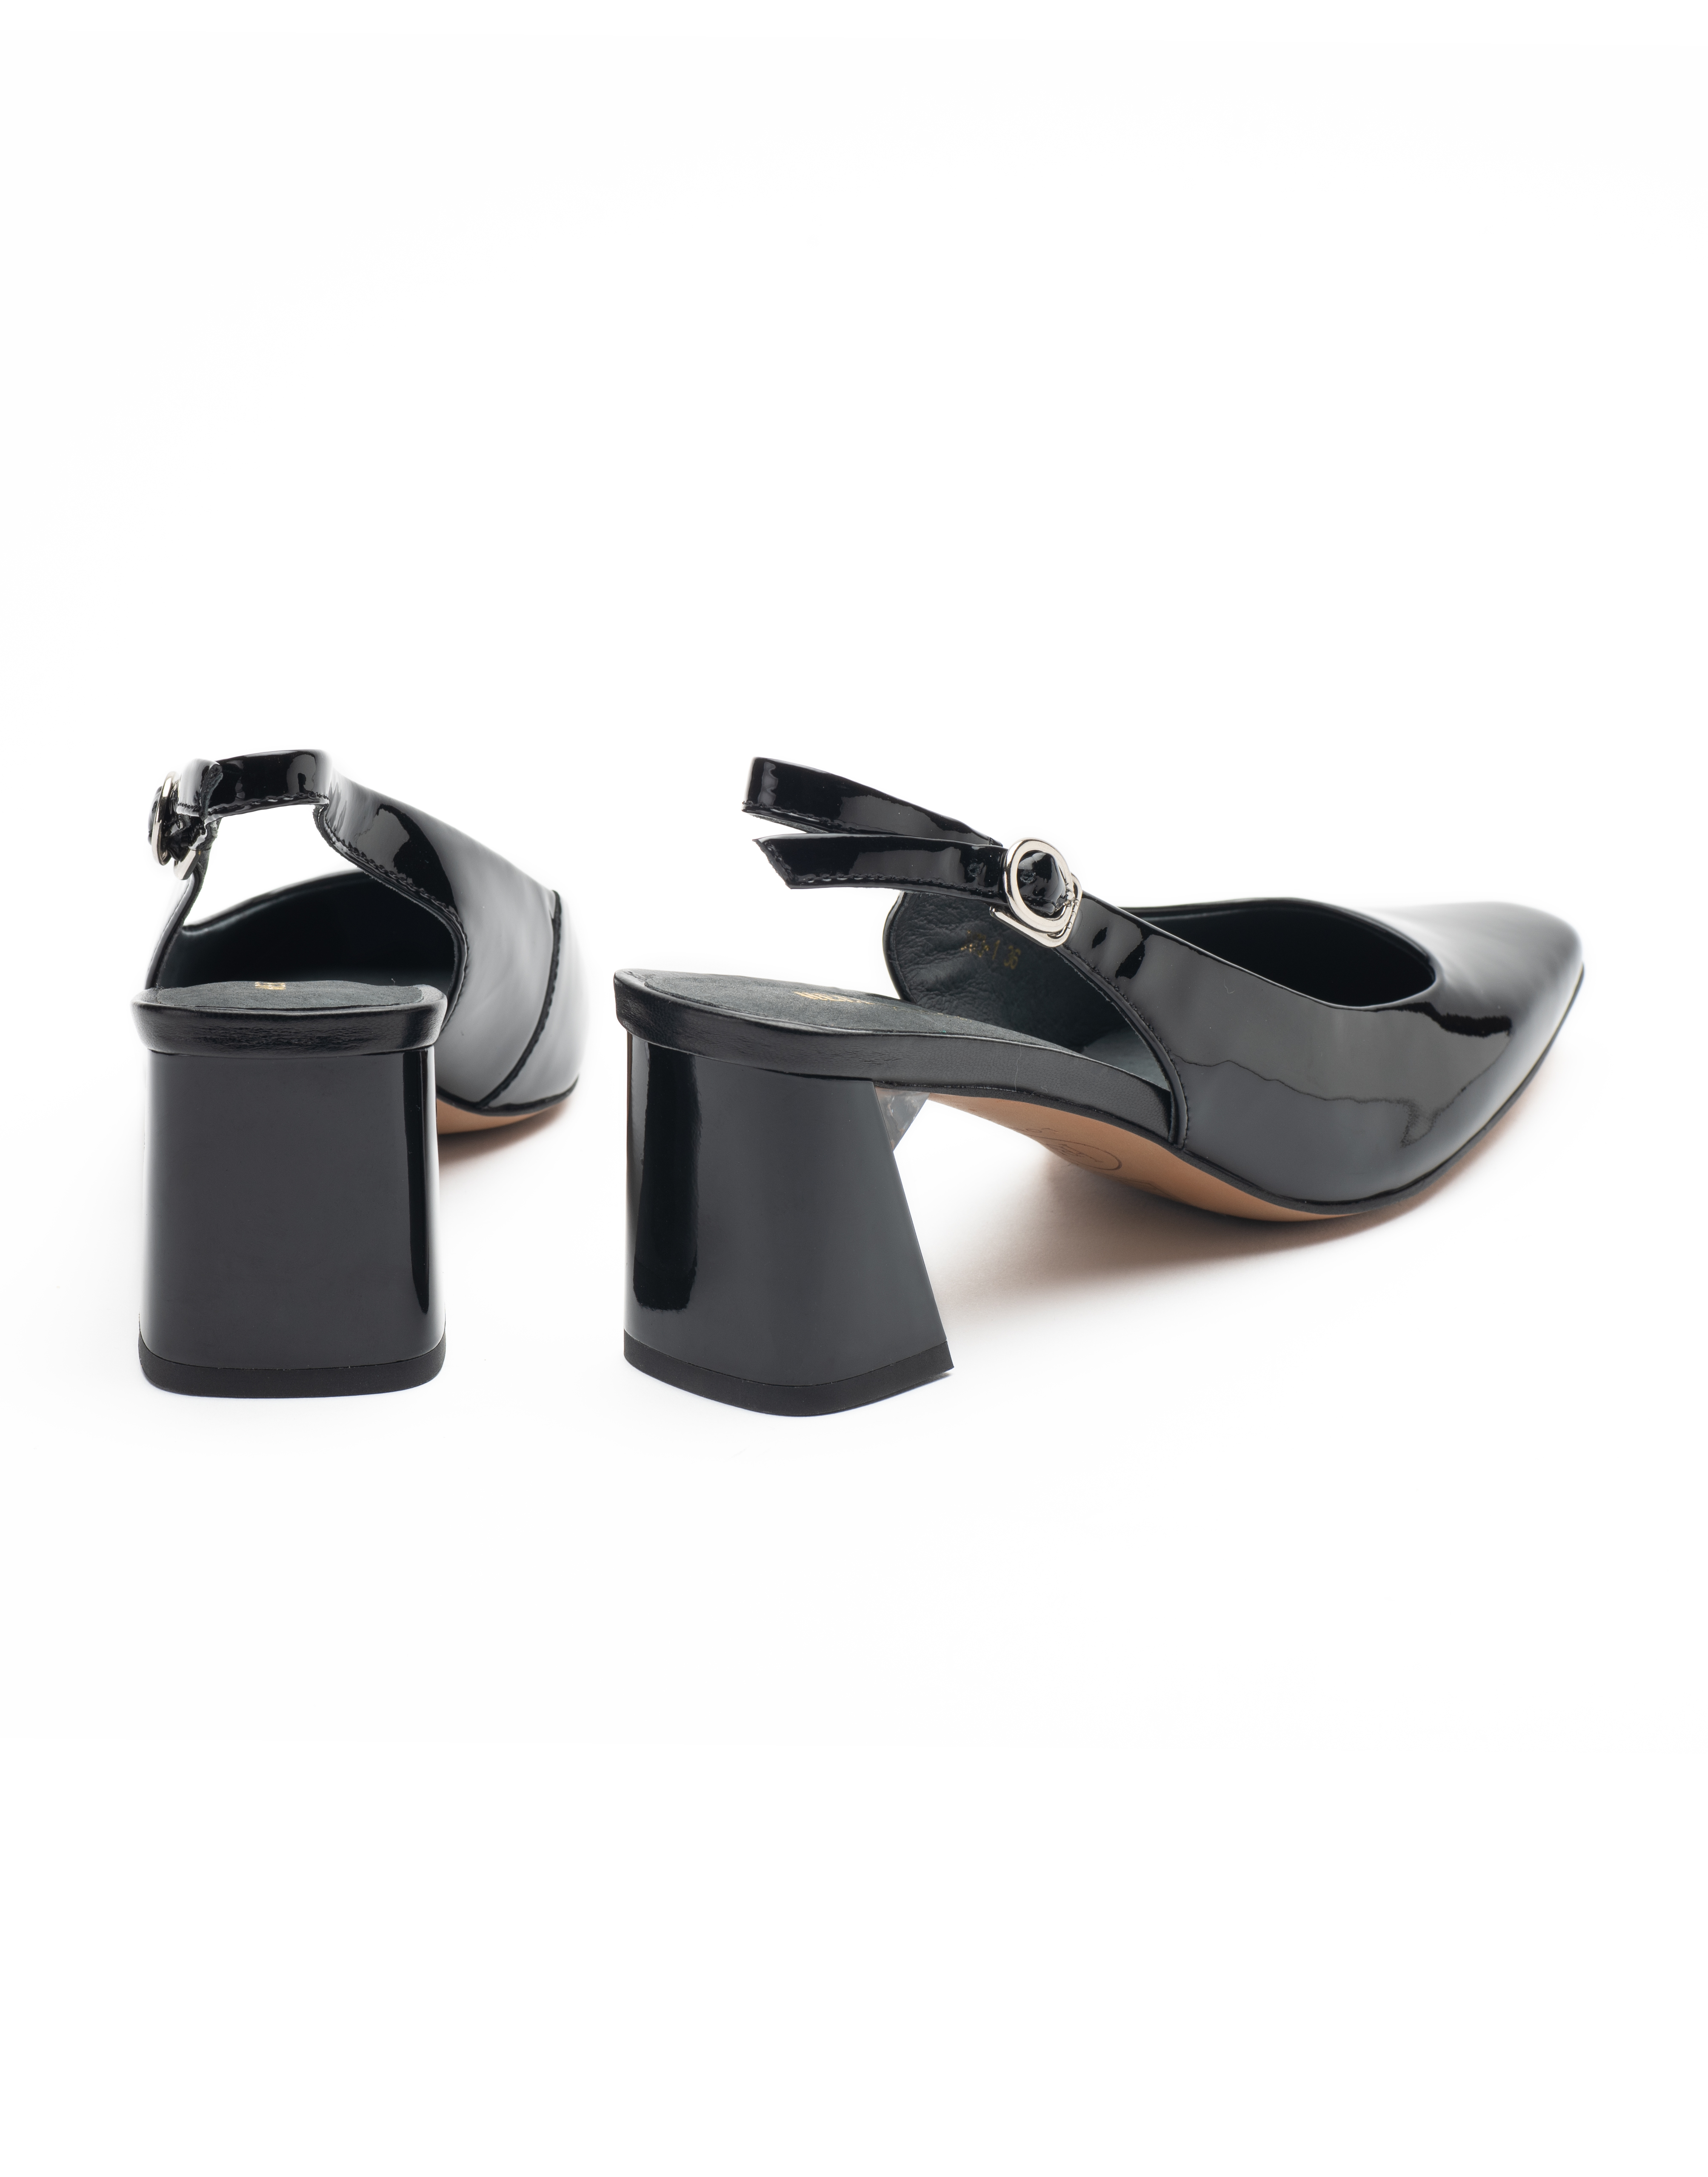 Heel _ Buckle London-Shoes-R173-1-Closed block heels-Black-3